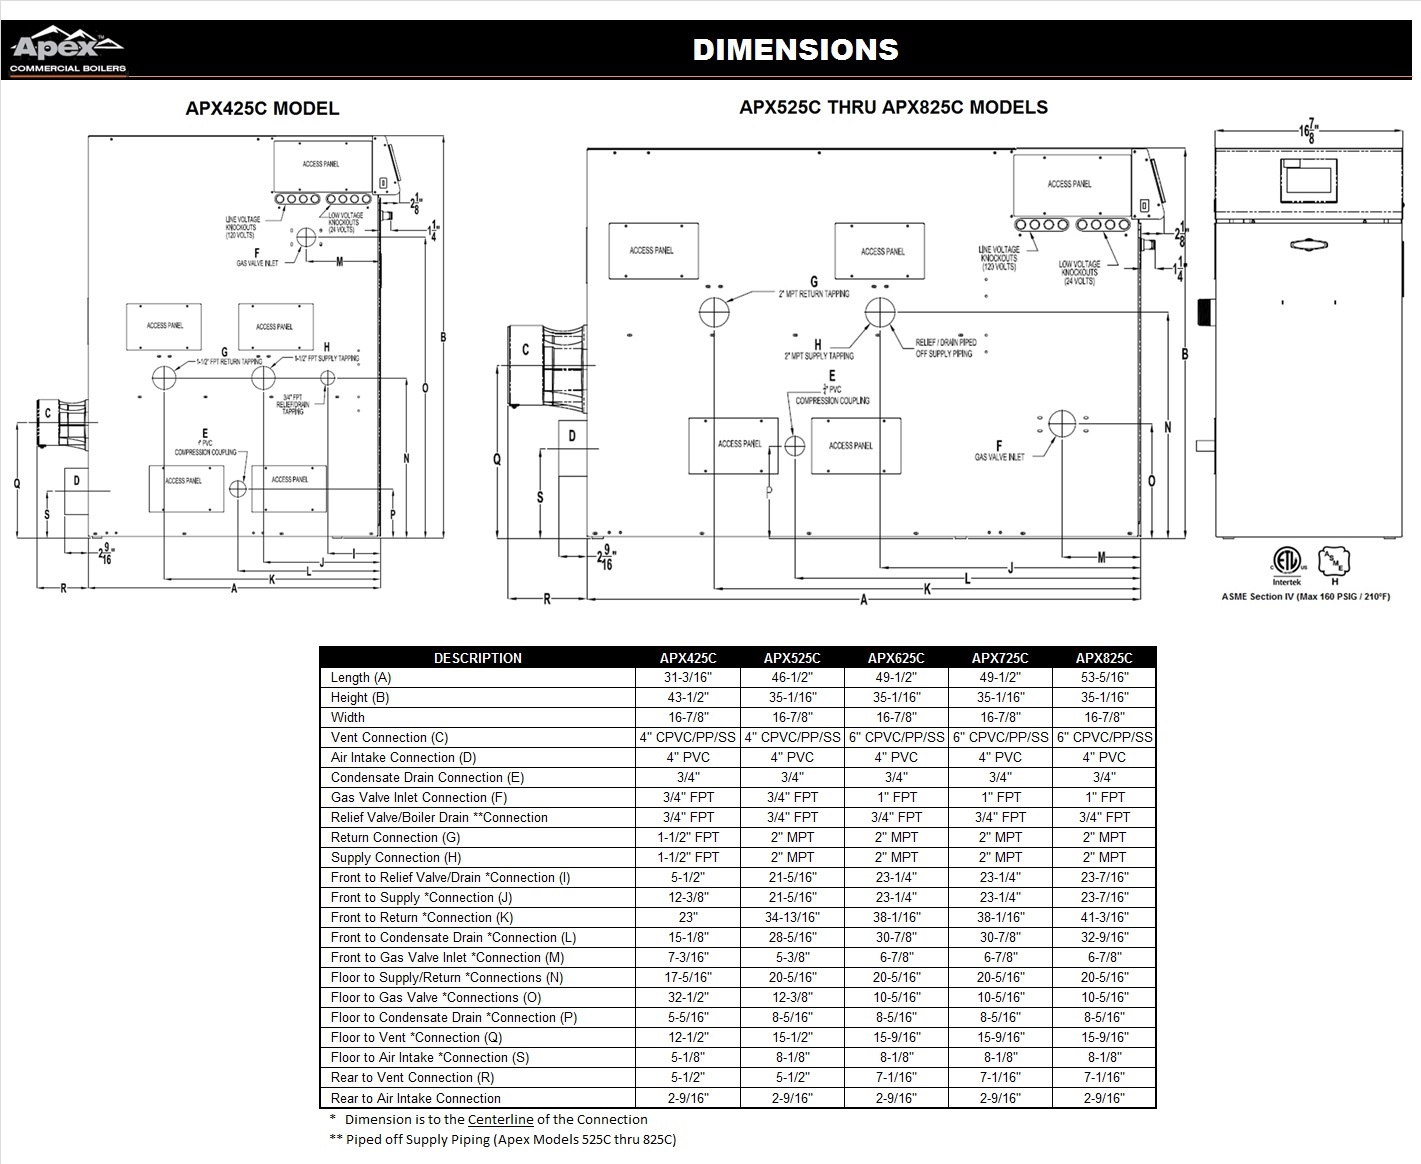 Arcoaire Heat Pump Wiring Diagram : Tempstar parts diagram wiring source